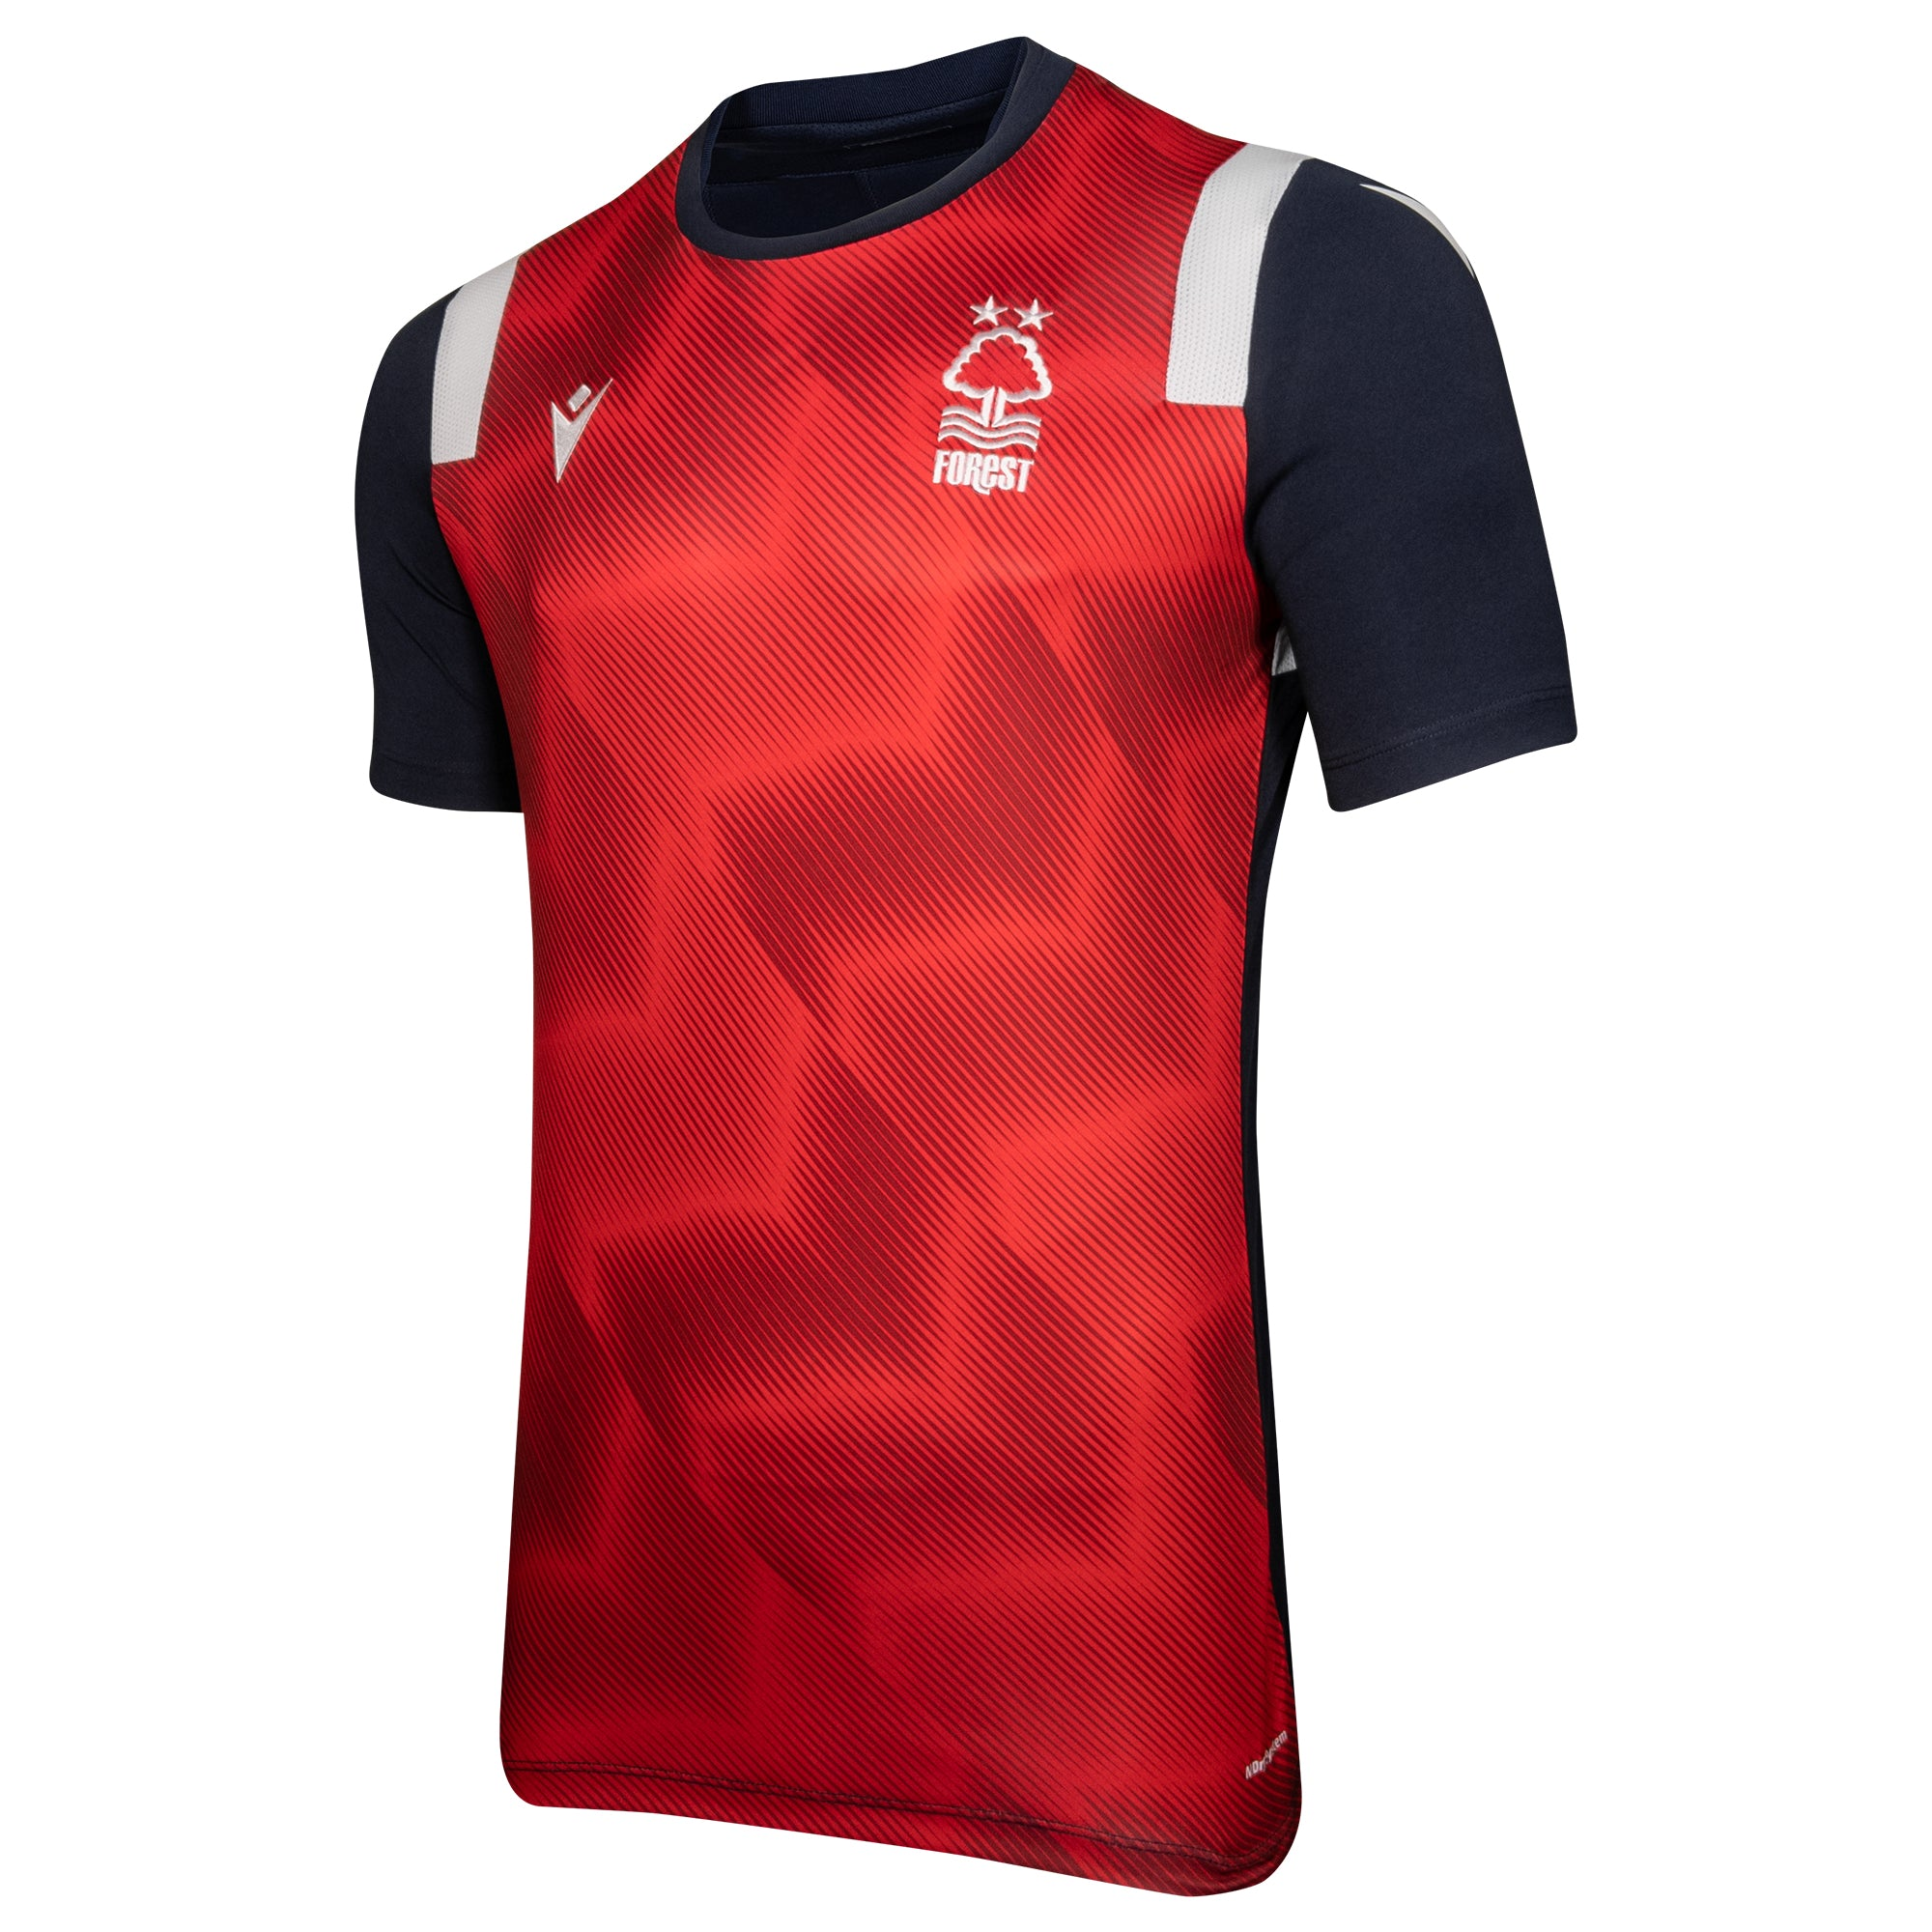 NFFC Junior Player Training Jersey 2020/21